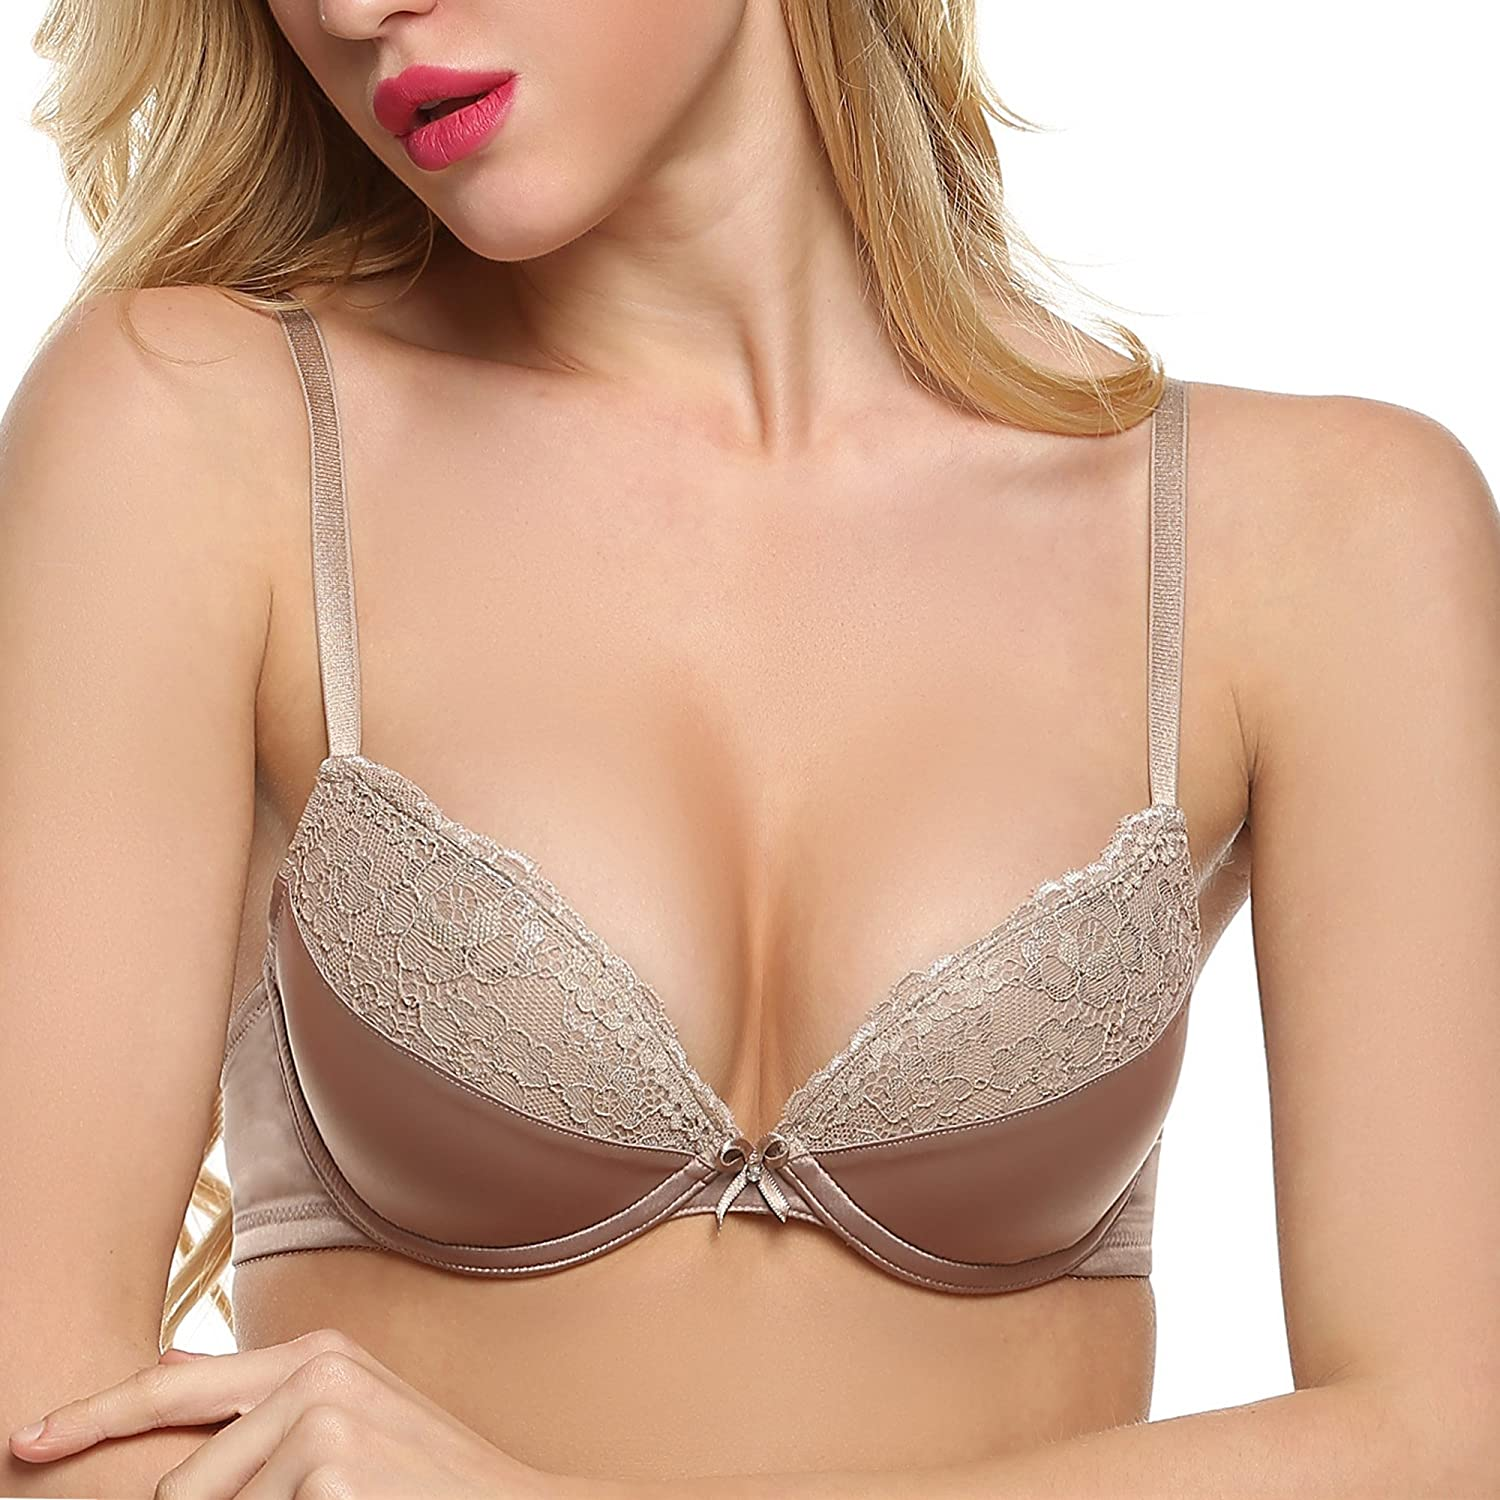 25b947fec Ekouaer Women s Lace Padded Underwire Demi Plunge Push Up Bra 32A-38D   Amazon.ca  Clothing   Accessories